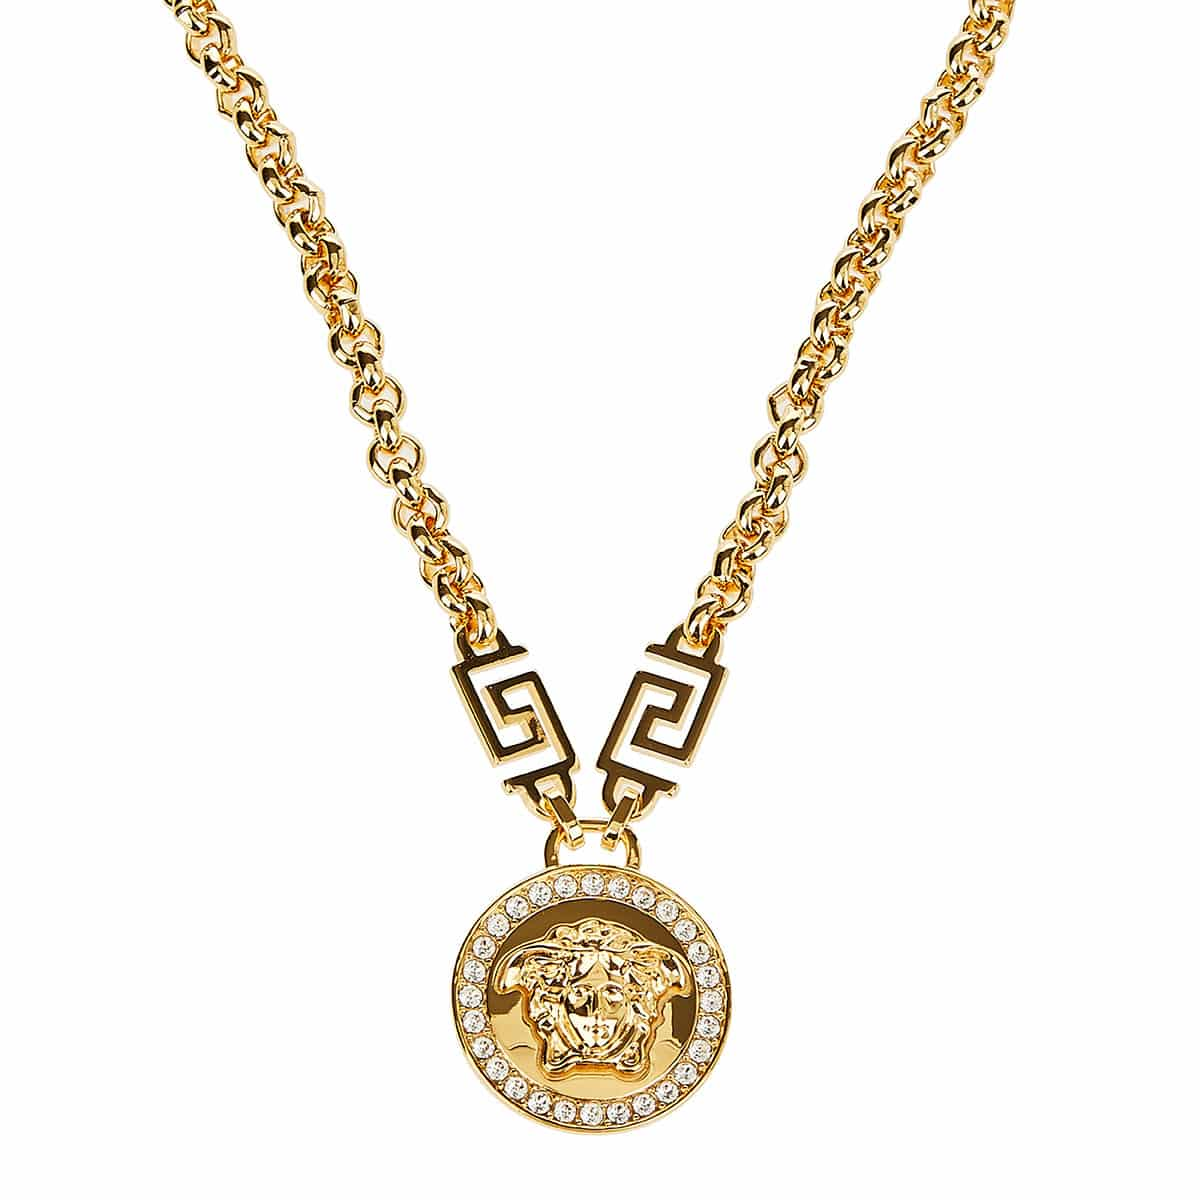 Medusa pendant chain necklace